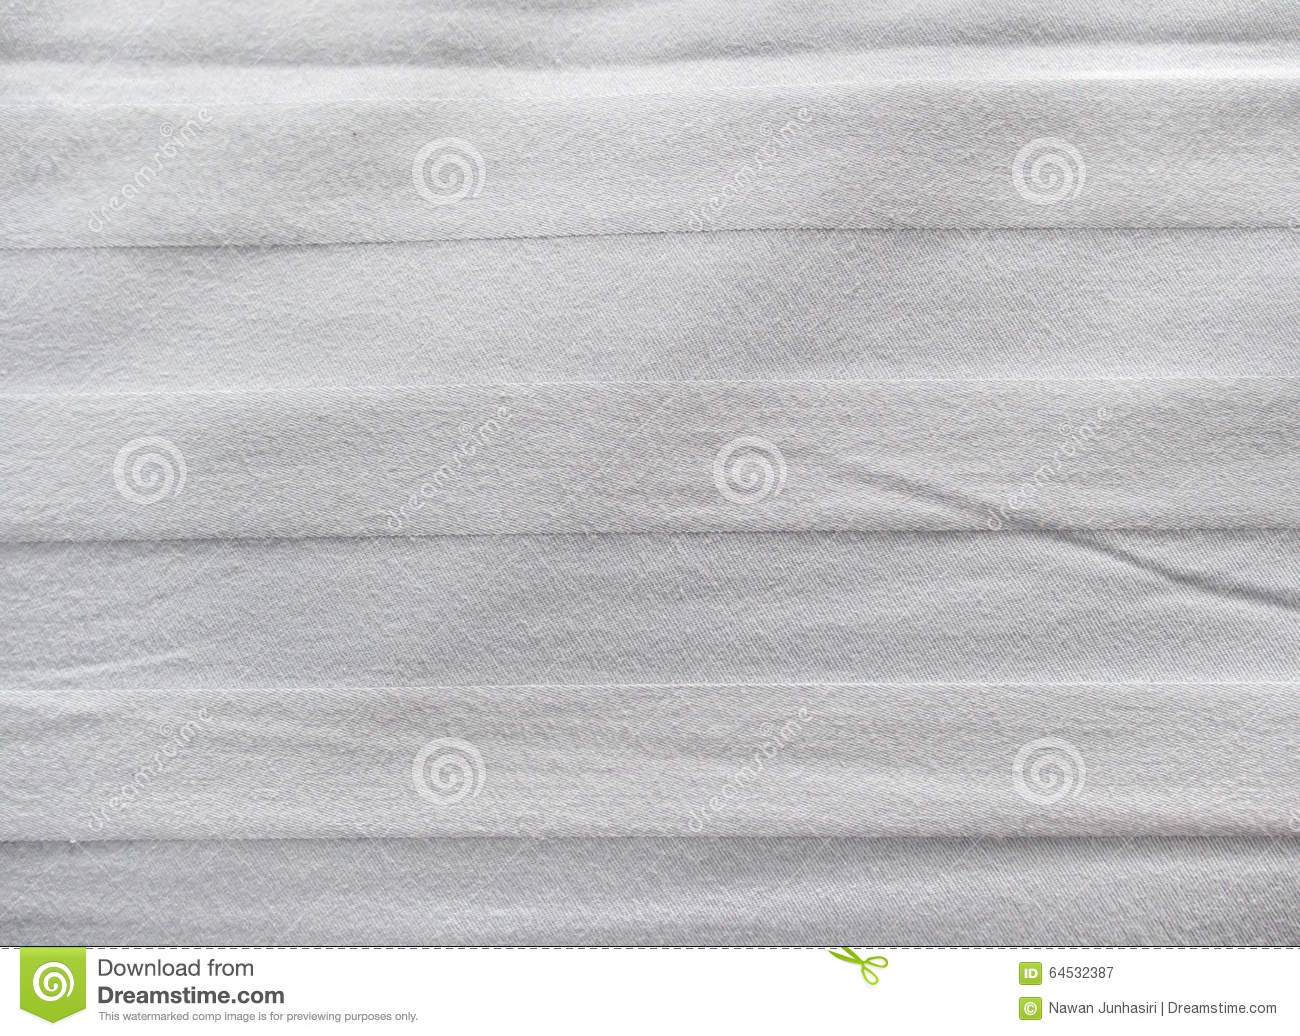 Brown bed sheets texture - Bed Sheet Texture